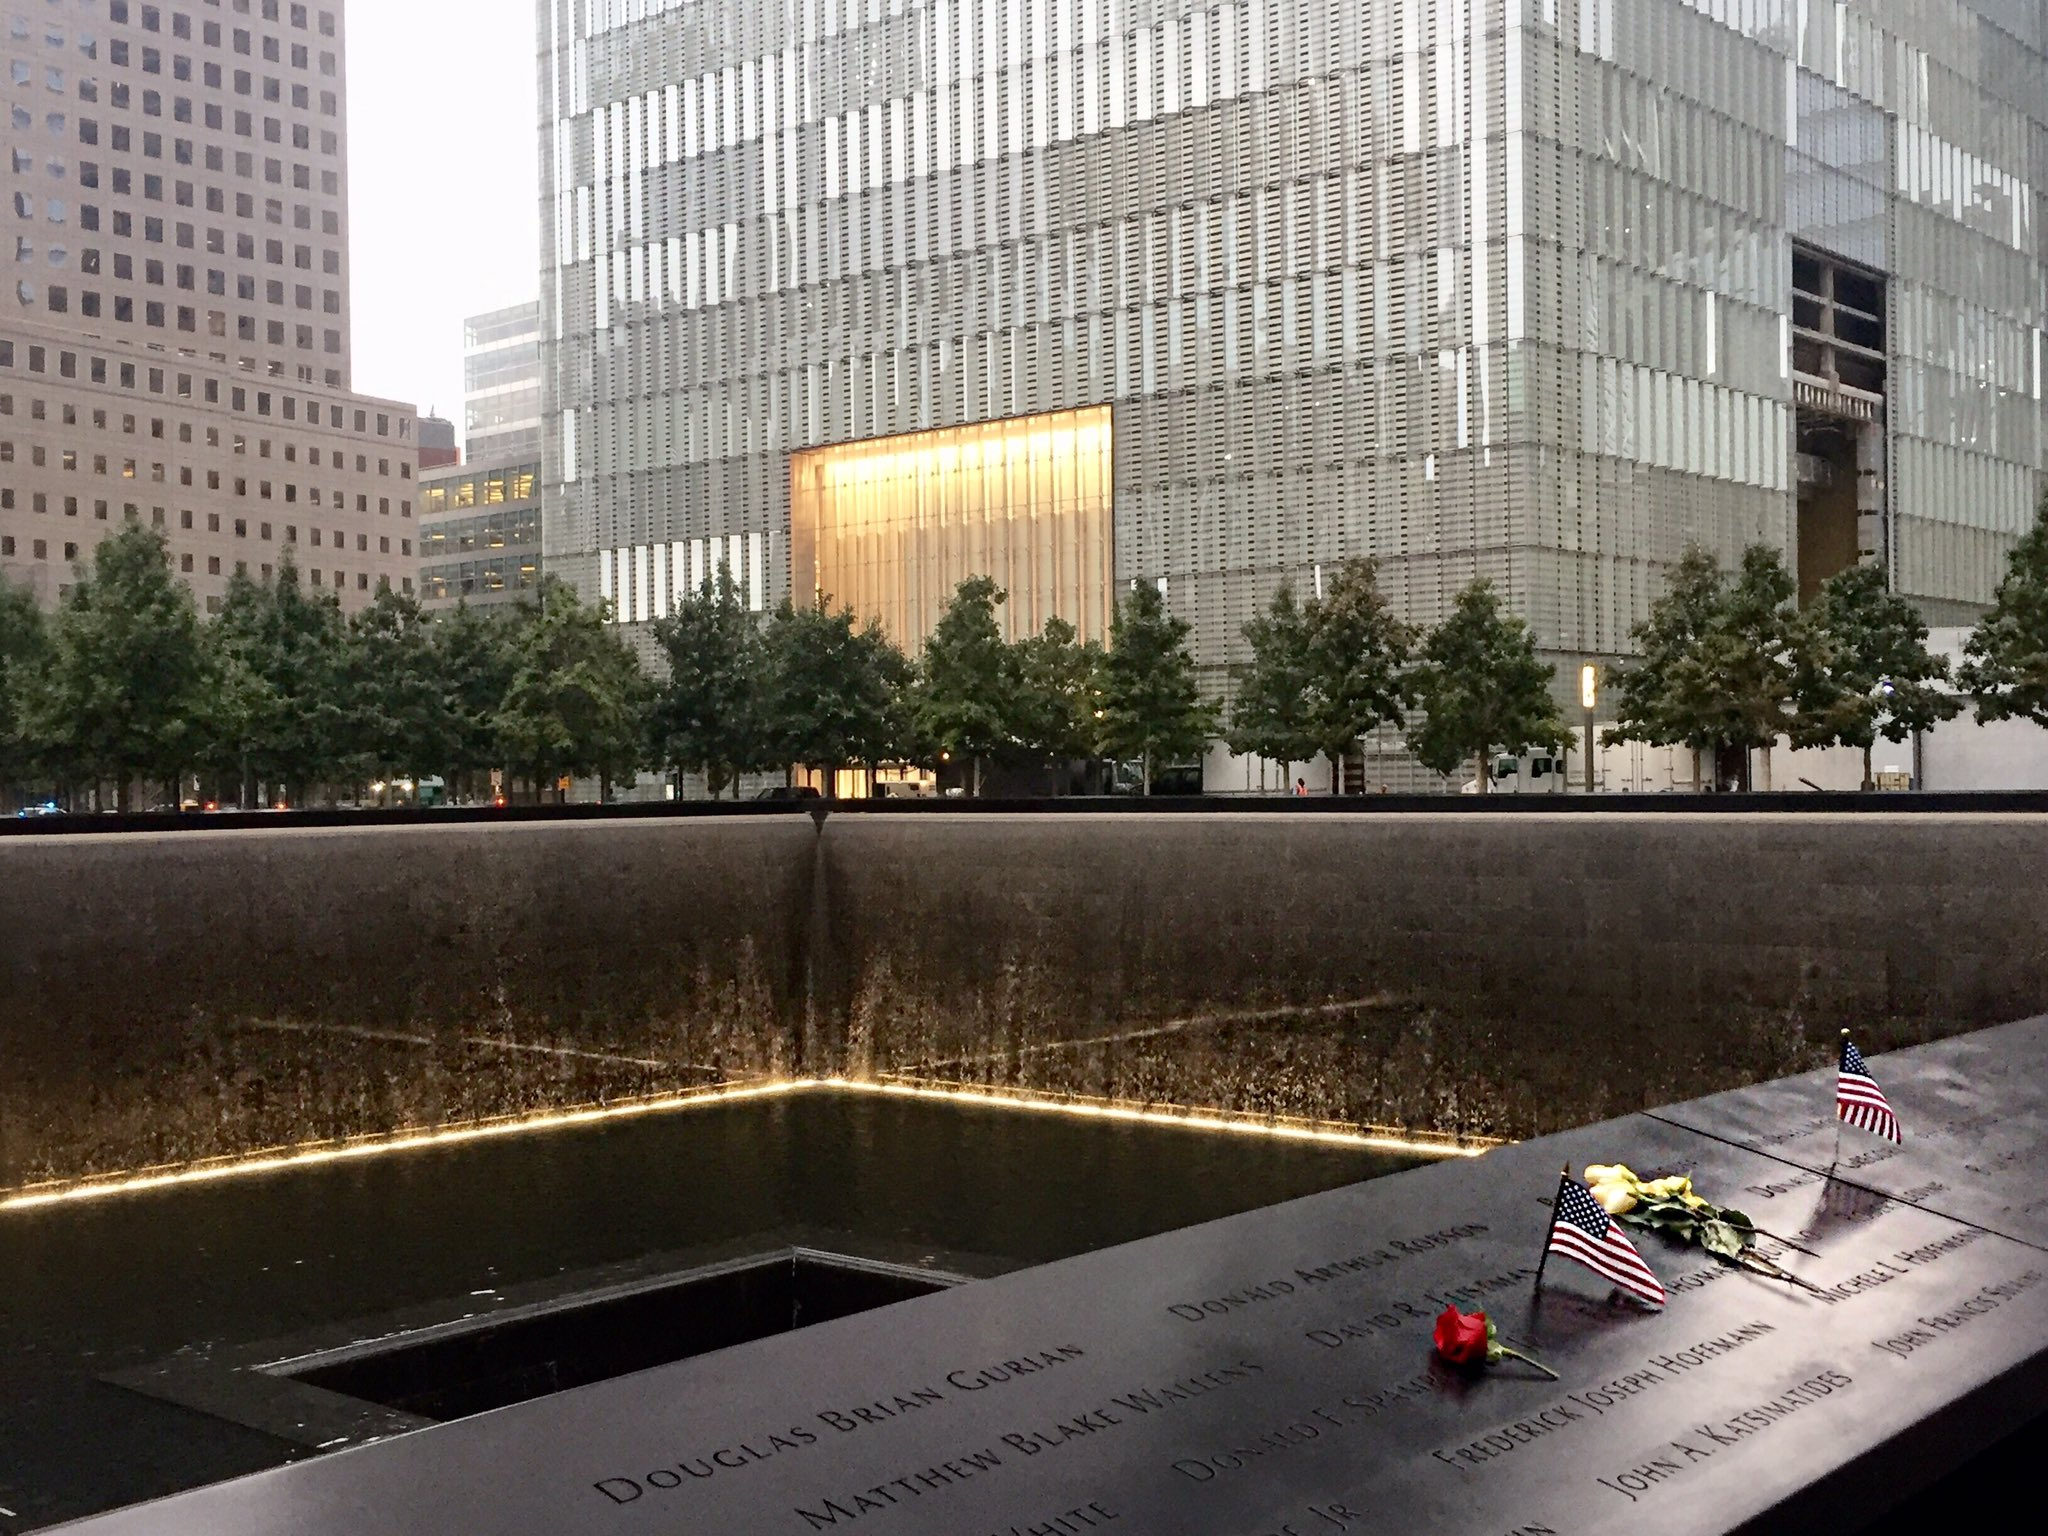 We will never forget. #Honor911 https://t.co/iJ089VKXTx